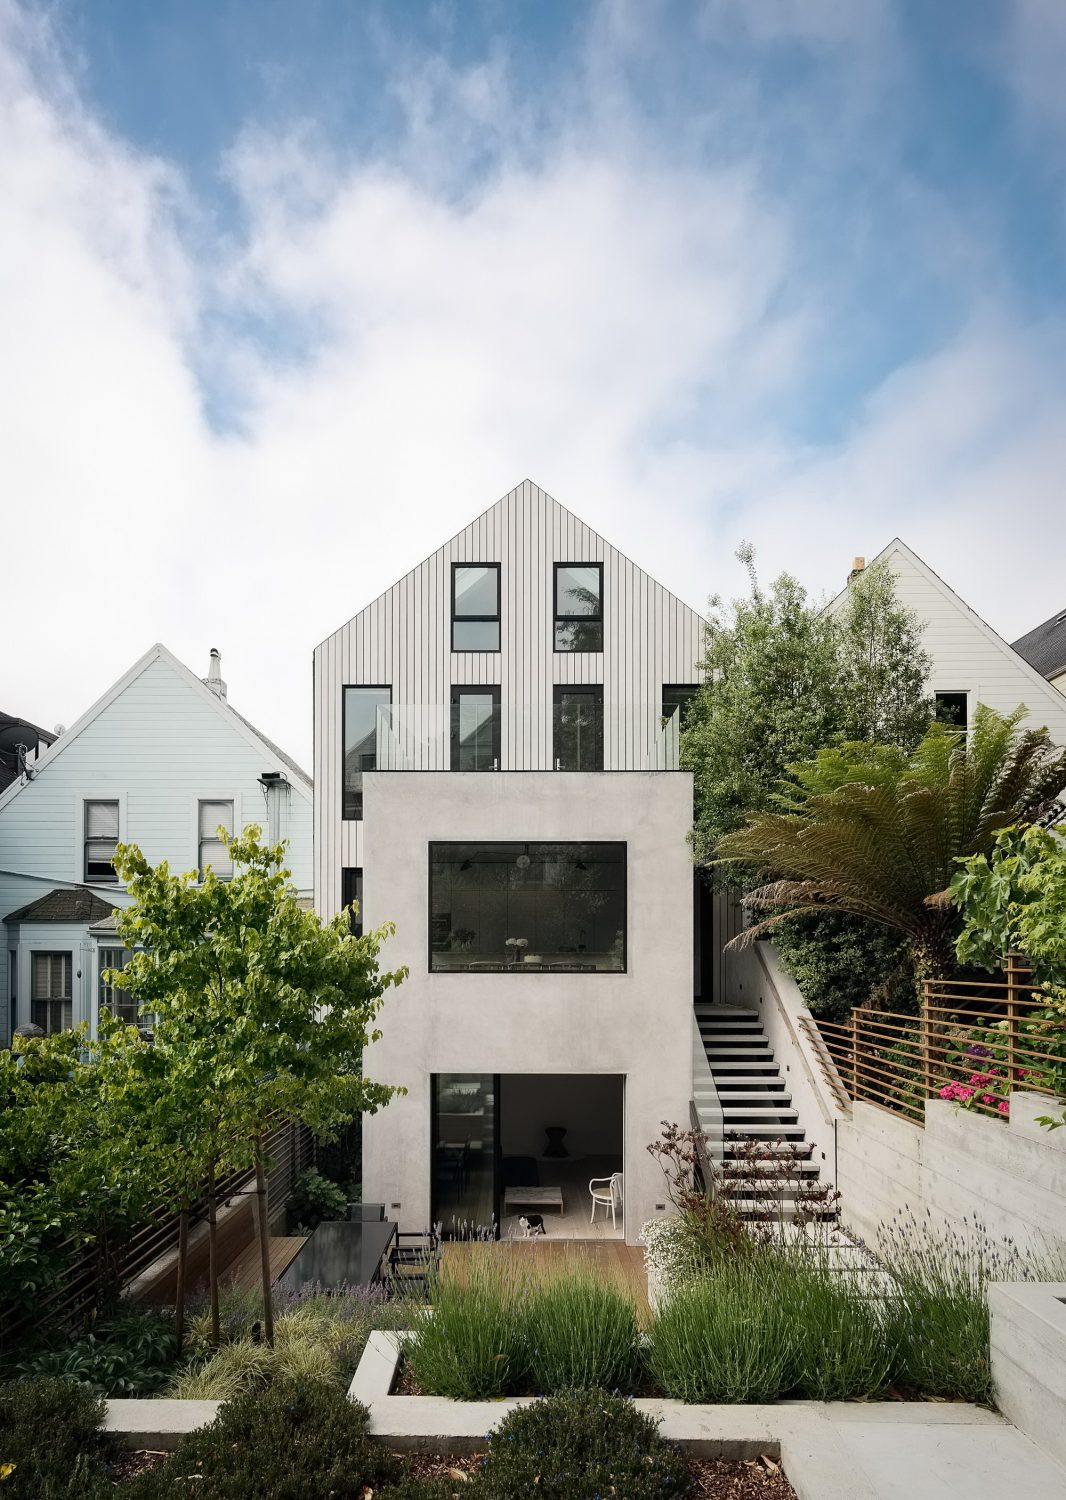 Gable House by Edmonds + Lee Architects